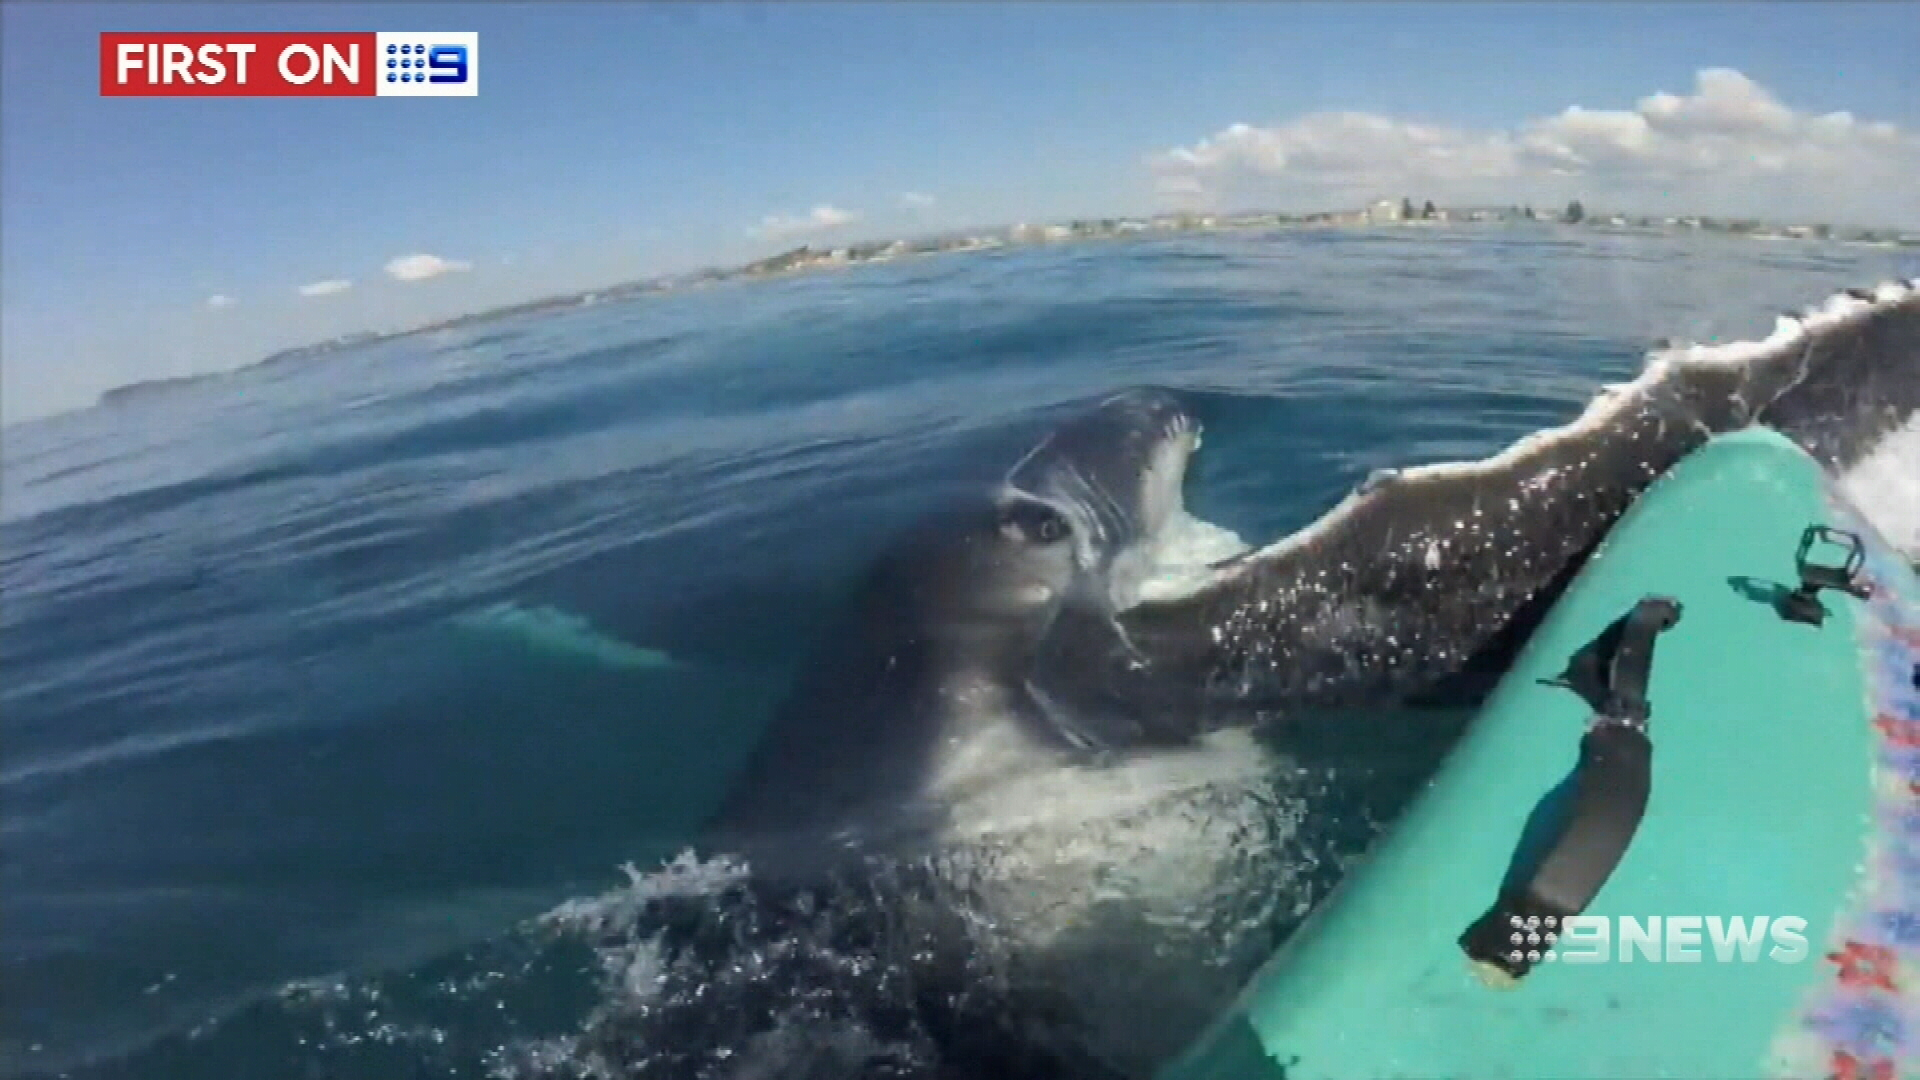 Face to face with a whale